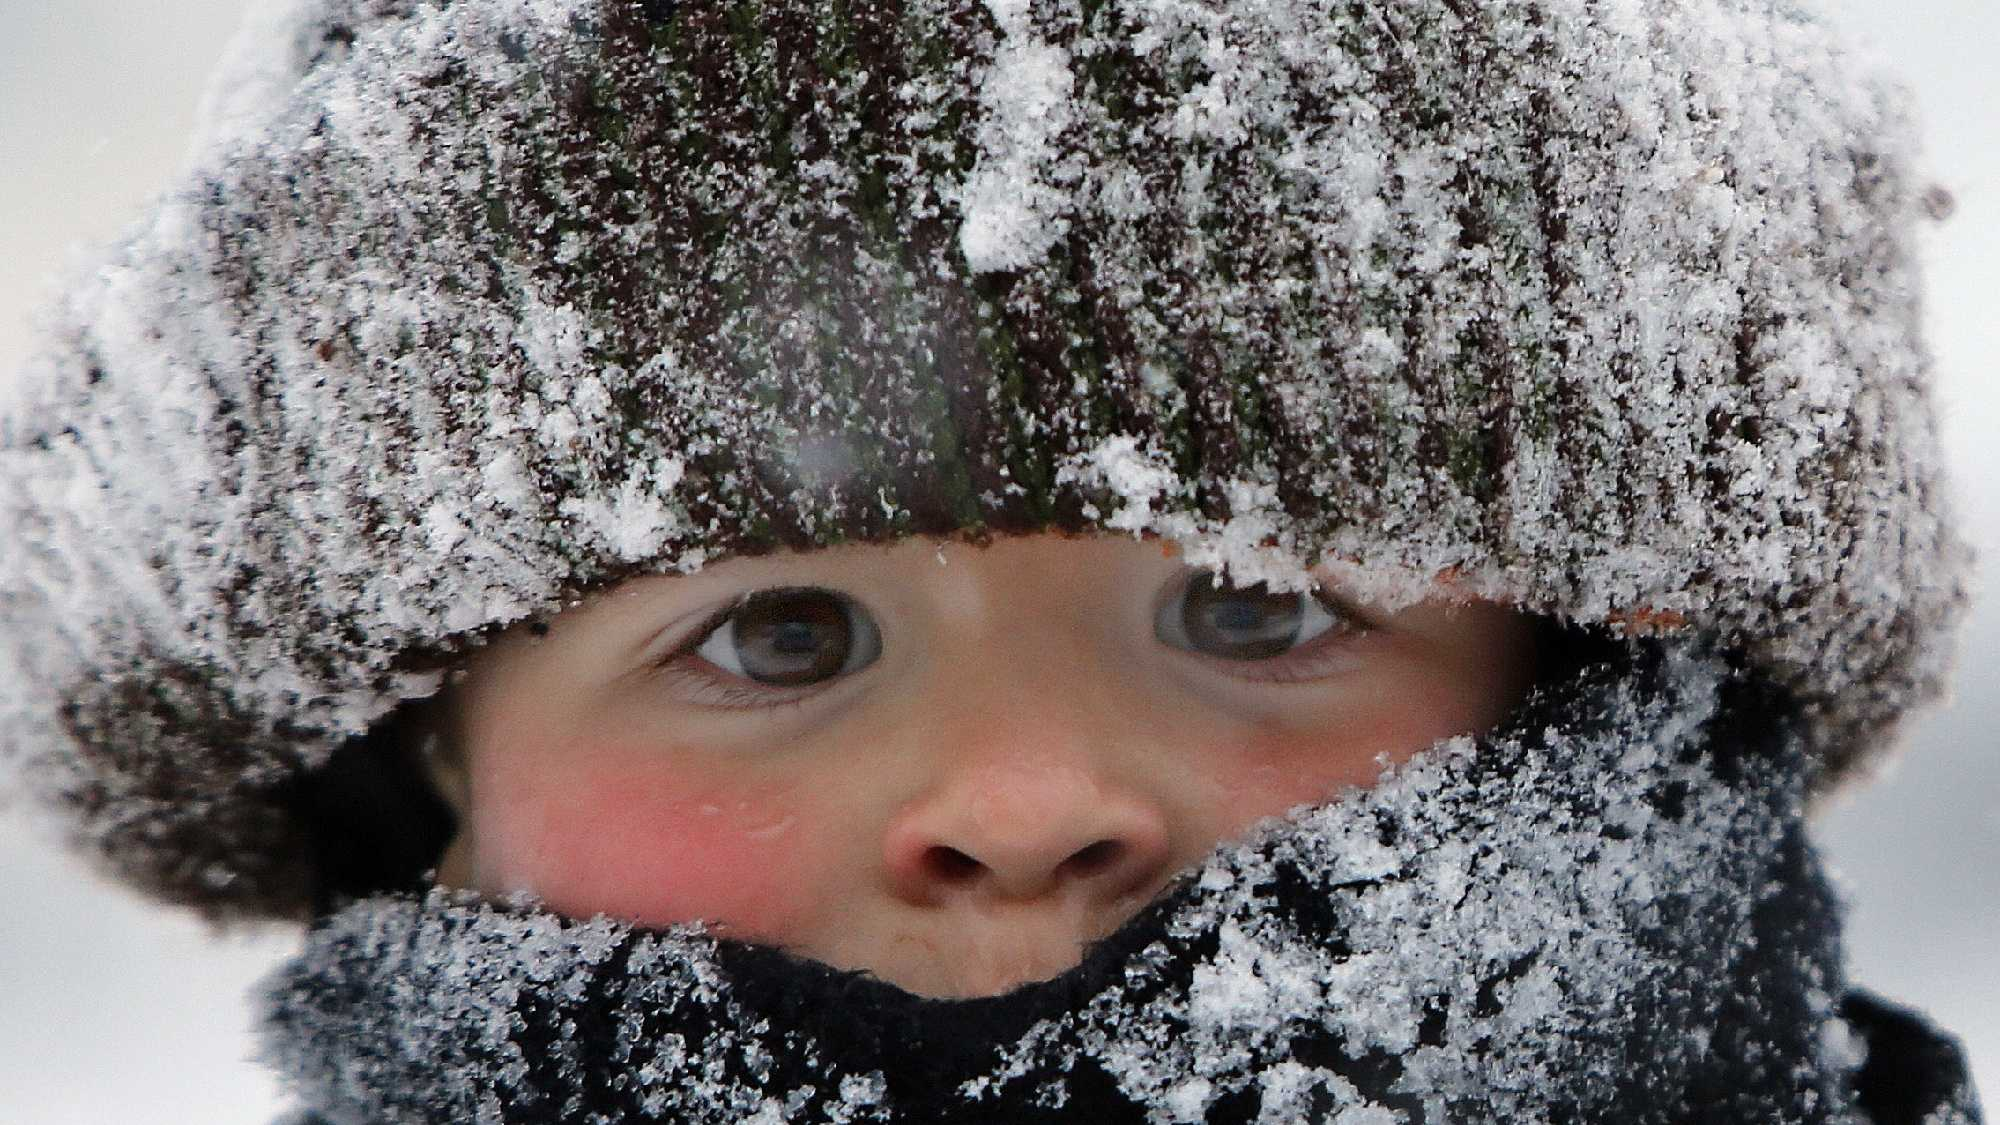 Will Annicchiarico is bundled up as he plays in the snow following a snowstorm Tuesday, Jan. 27, 2015, in Concord, N.H.